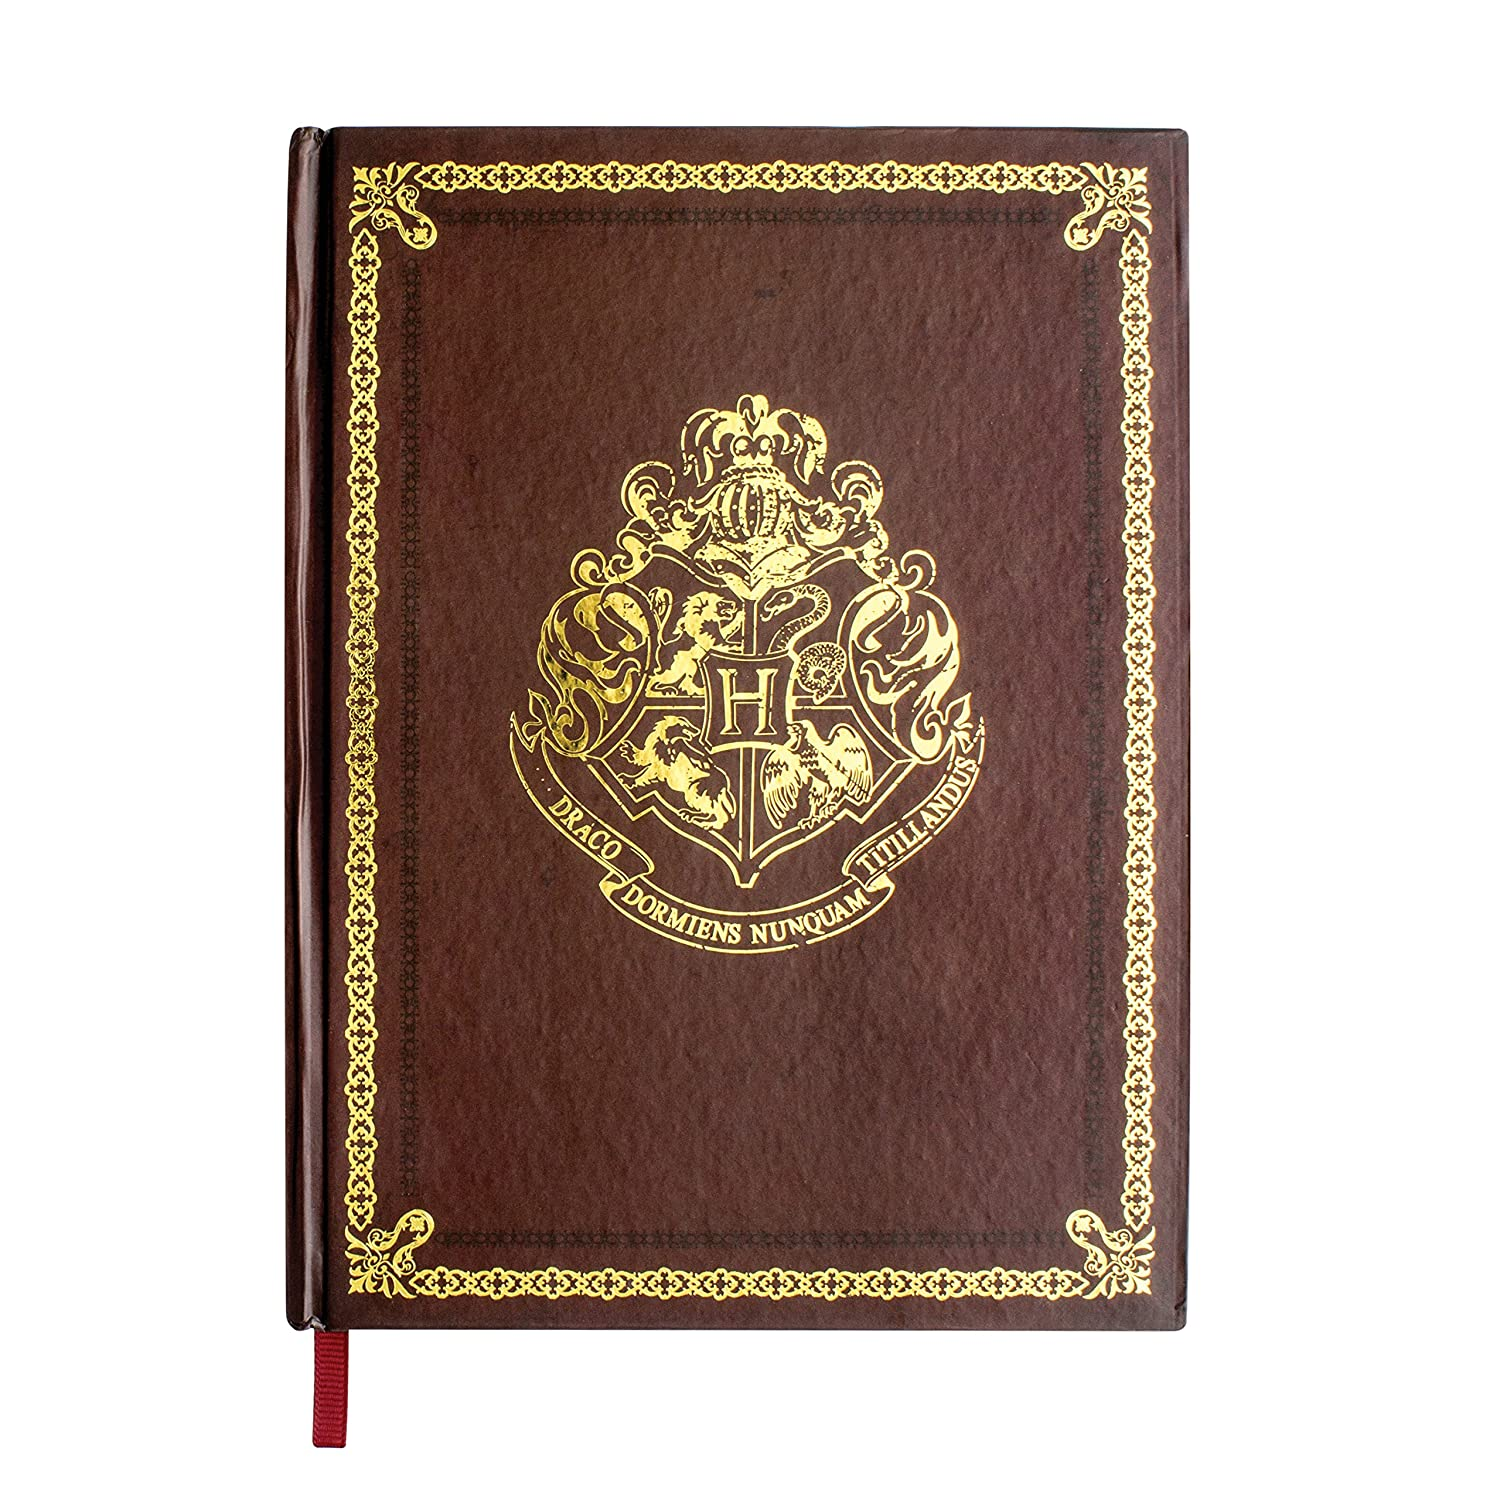 Official Harry Potter Hogwarts Crest Notebook Journal Stationery Paladone Products Ltd. PP3213HPTX